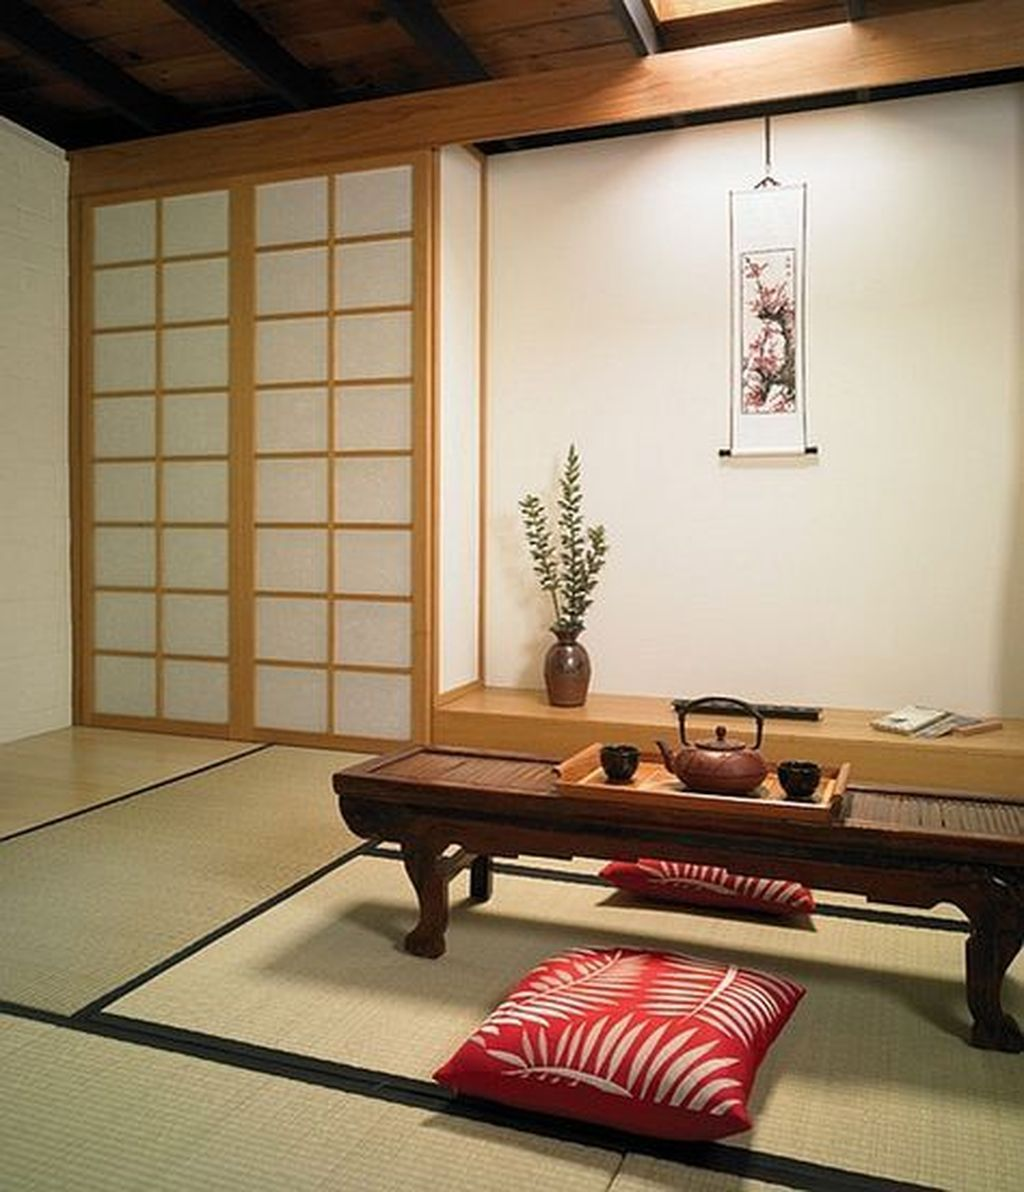 47 Relaxing Japanese Style Living Room Decoration Ideas is part of Living Room Rug 2018 - Do you long for more simplicity in your life  Is your current home decor too  busy  or mismatched to make […]